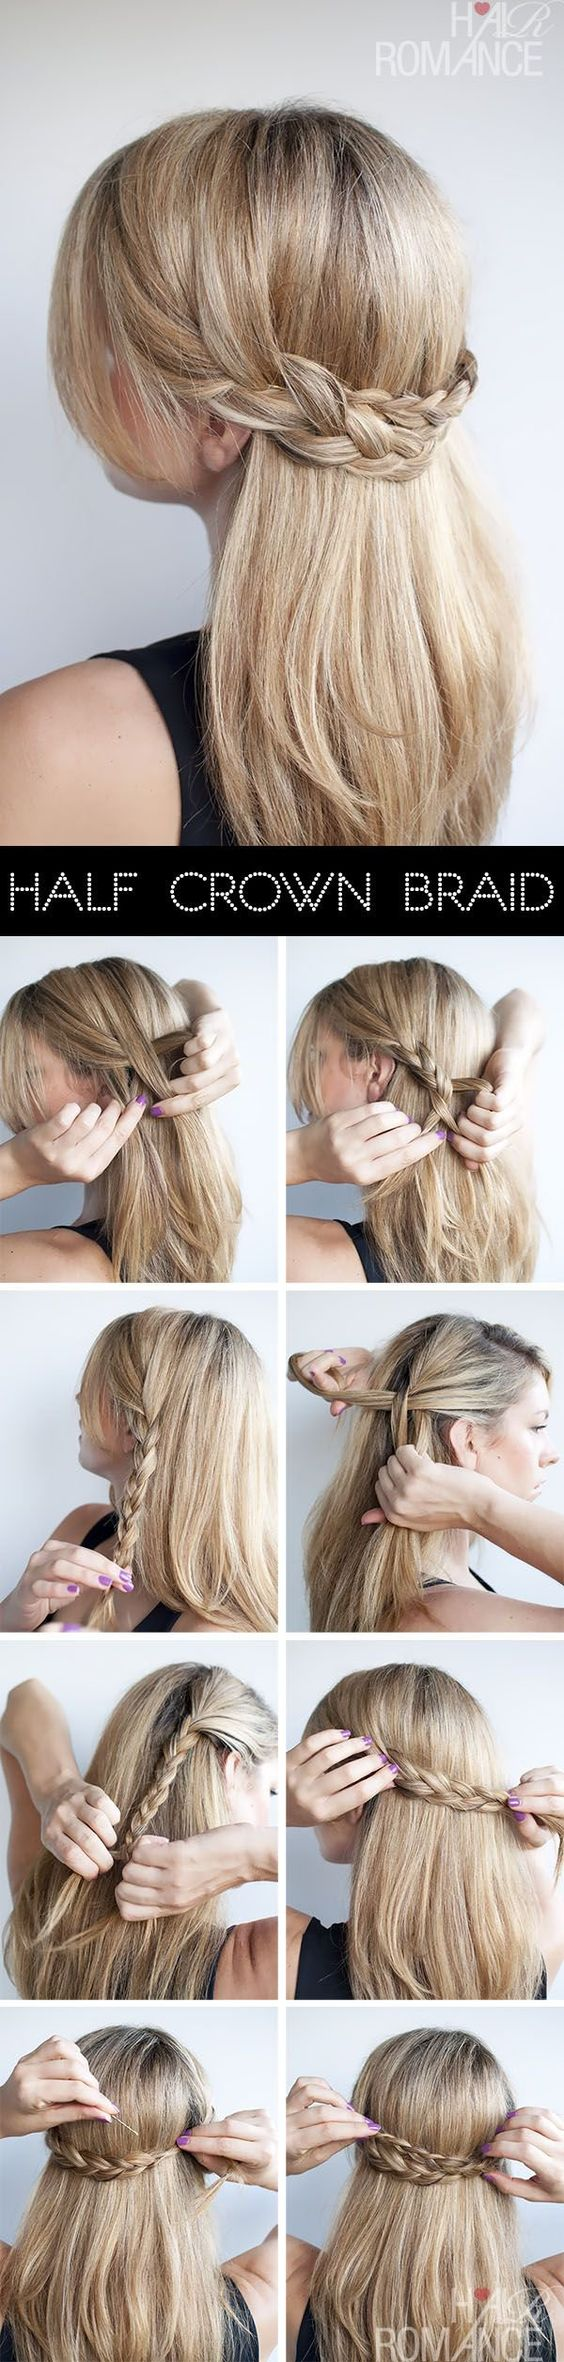 Not natural hair, but love the style. May try it with longer hair